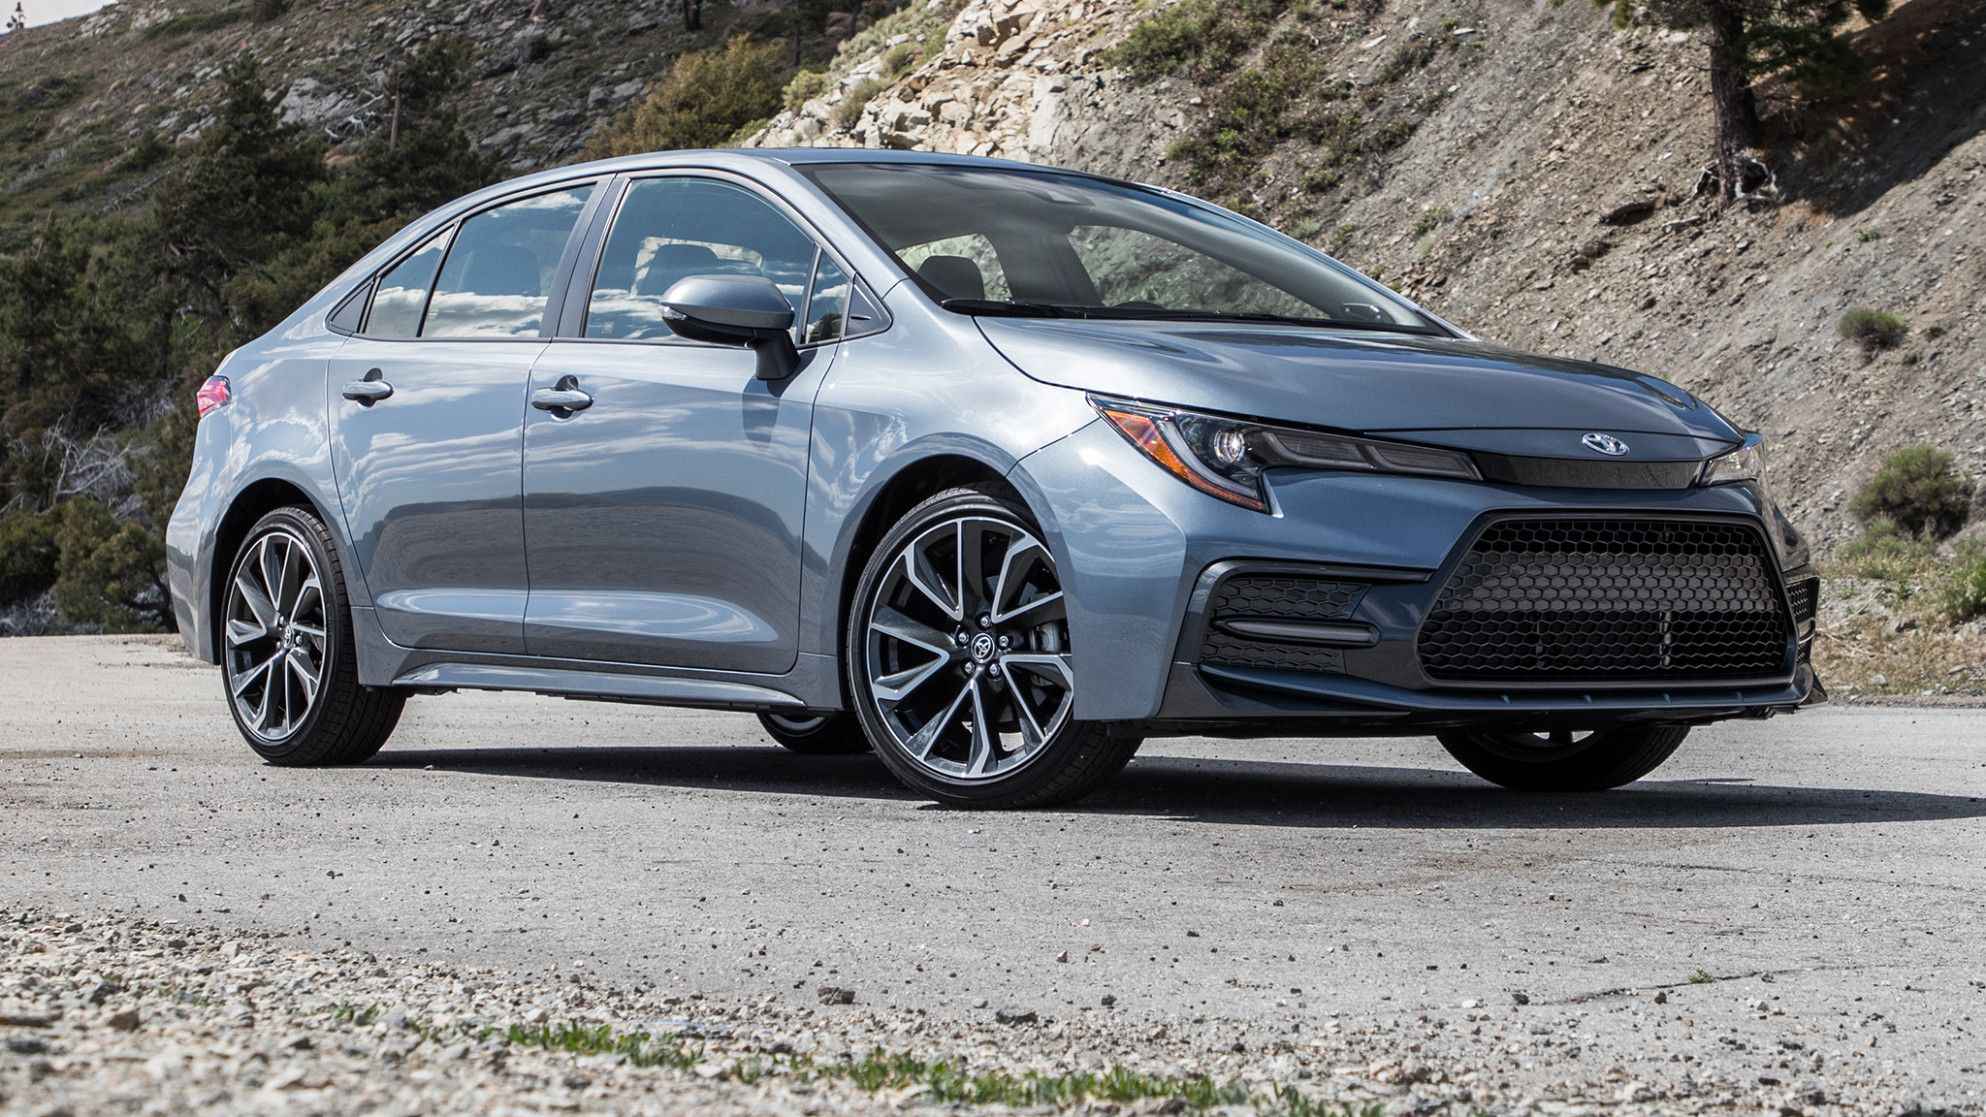 11 Wallpaper Toyota Xse Corolla 2020 From Car And Driverthis Adventure Originally Appeared In The May 2020 Affair Of Car And Driv In 2020 Toyota Corolla Toyota Corolla